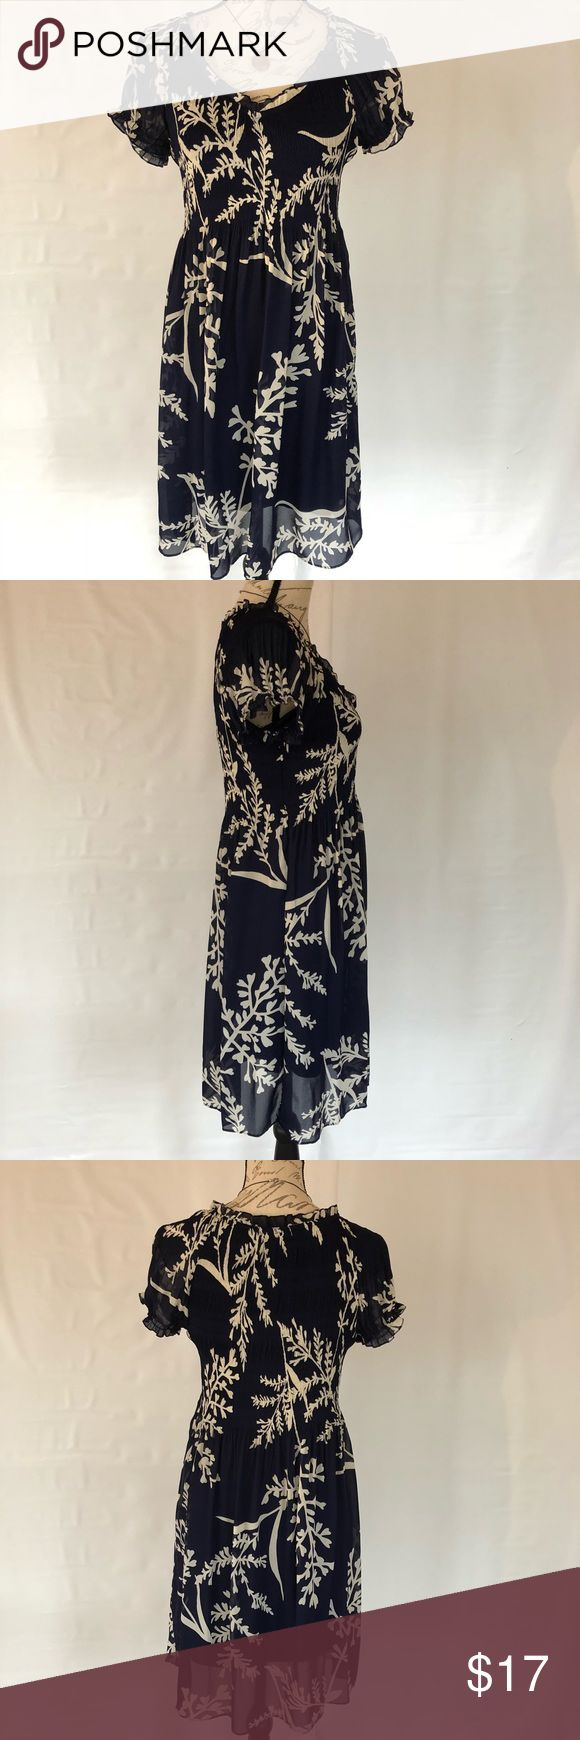 Breezy Navy and White Crinkle Stretch Frilly Dress Navy with bold white floral print. Crinkly gathered bodice with full flowy skirt, cap sleeves and v-neck all hemmed with ruffles. Fully lined polyester dress. Machine wash and dry. Great condition - only one tiny snag on shoulder (see pic). Sunny Leigh Dresses